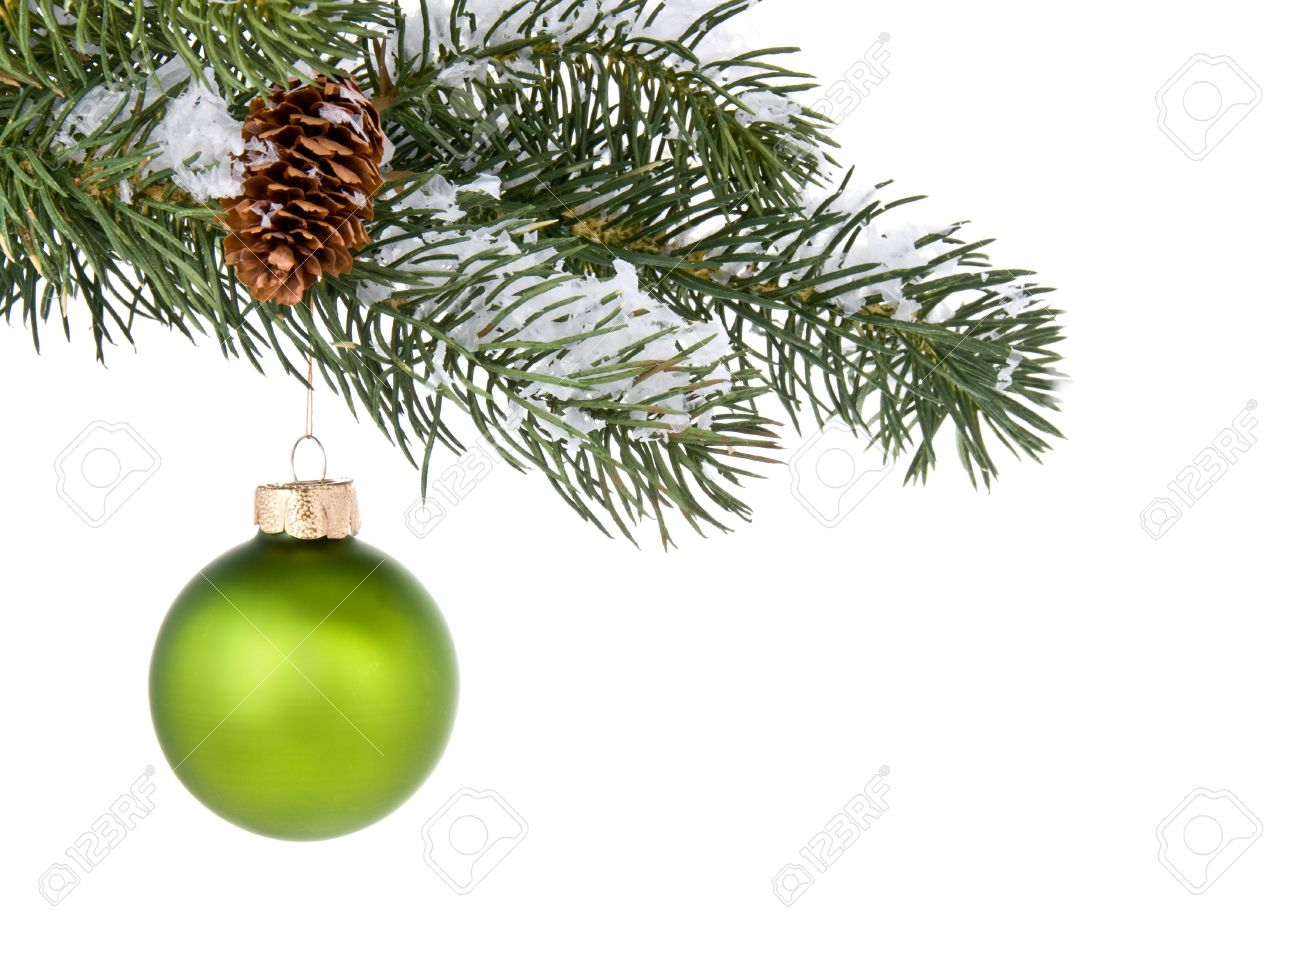 Christmas Branch Tree.Green Christmas Tree Ornament Hangs From A Pine Tree Branch On